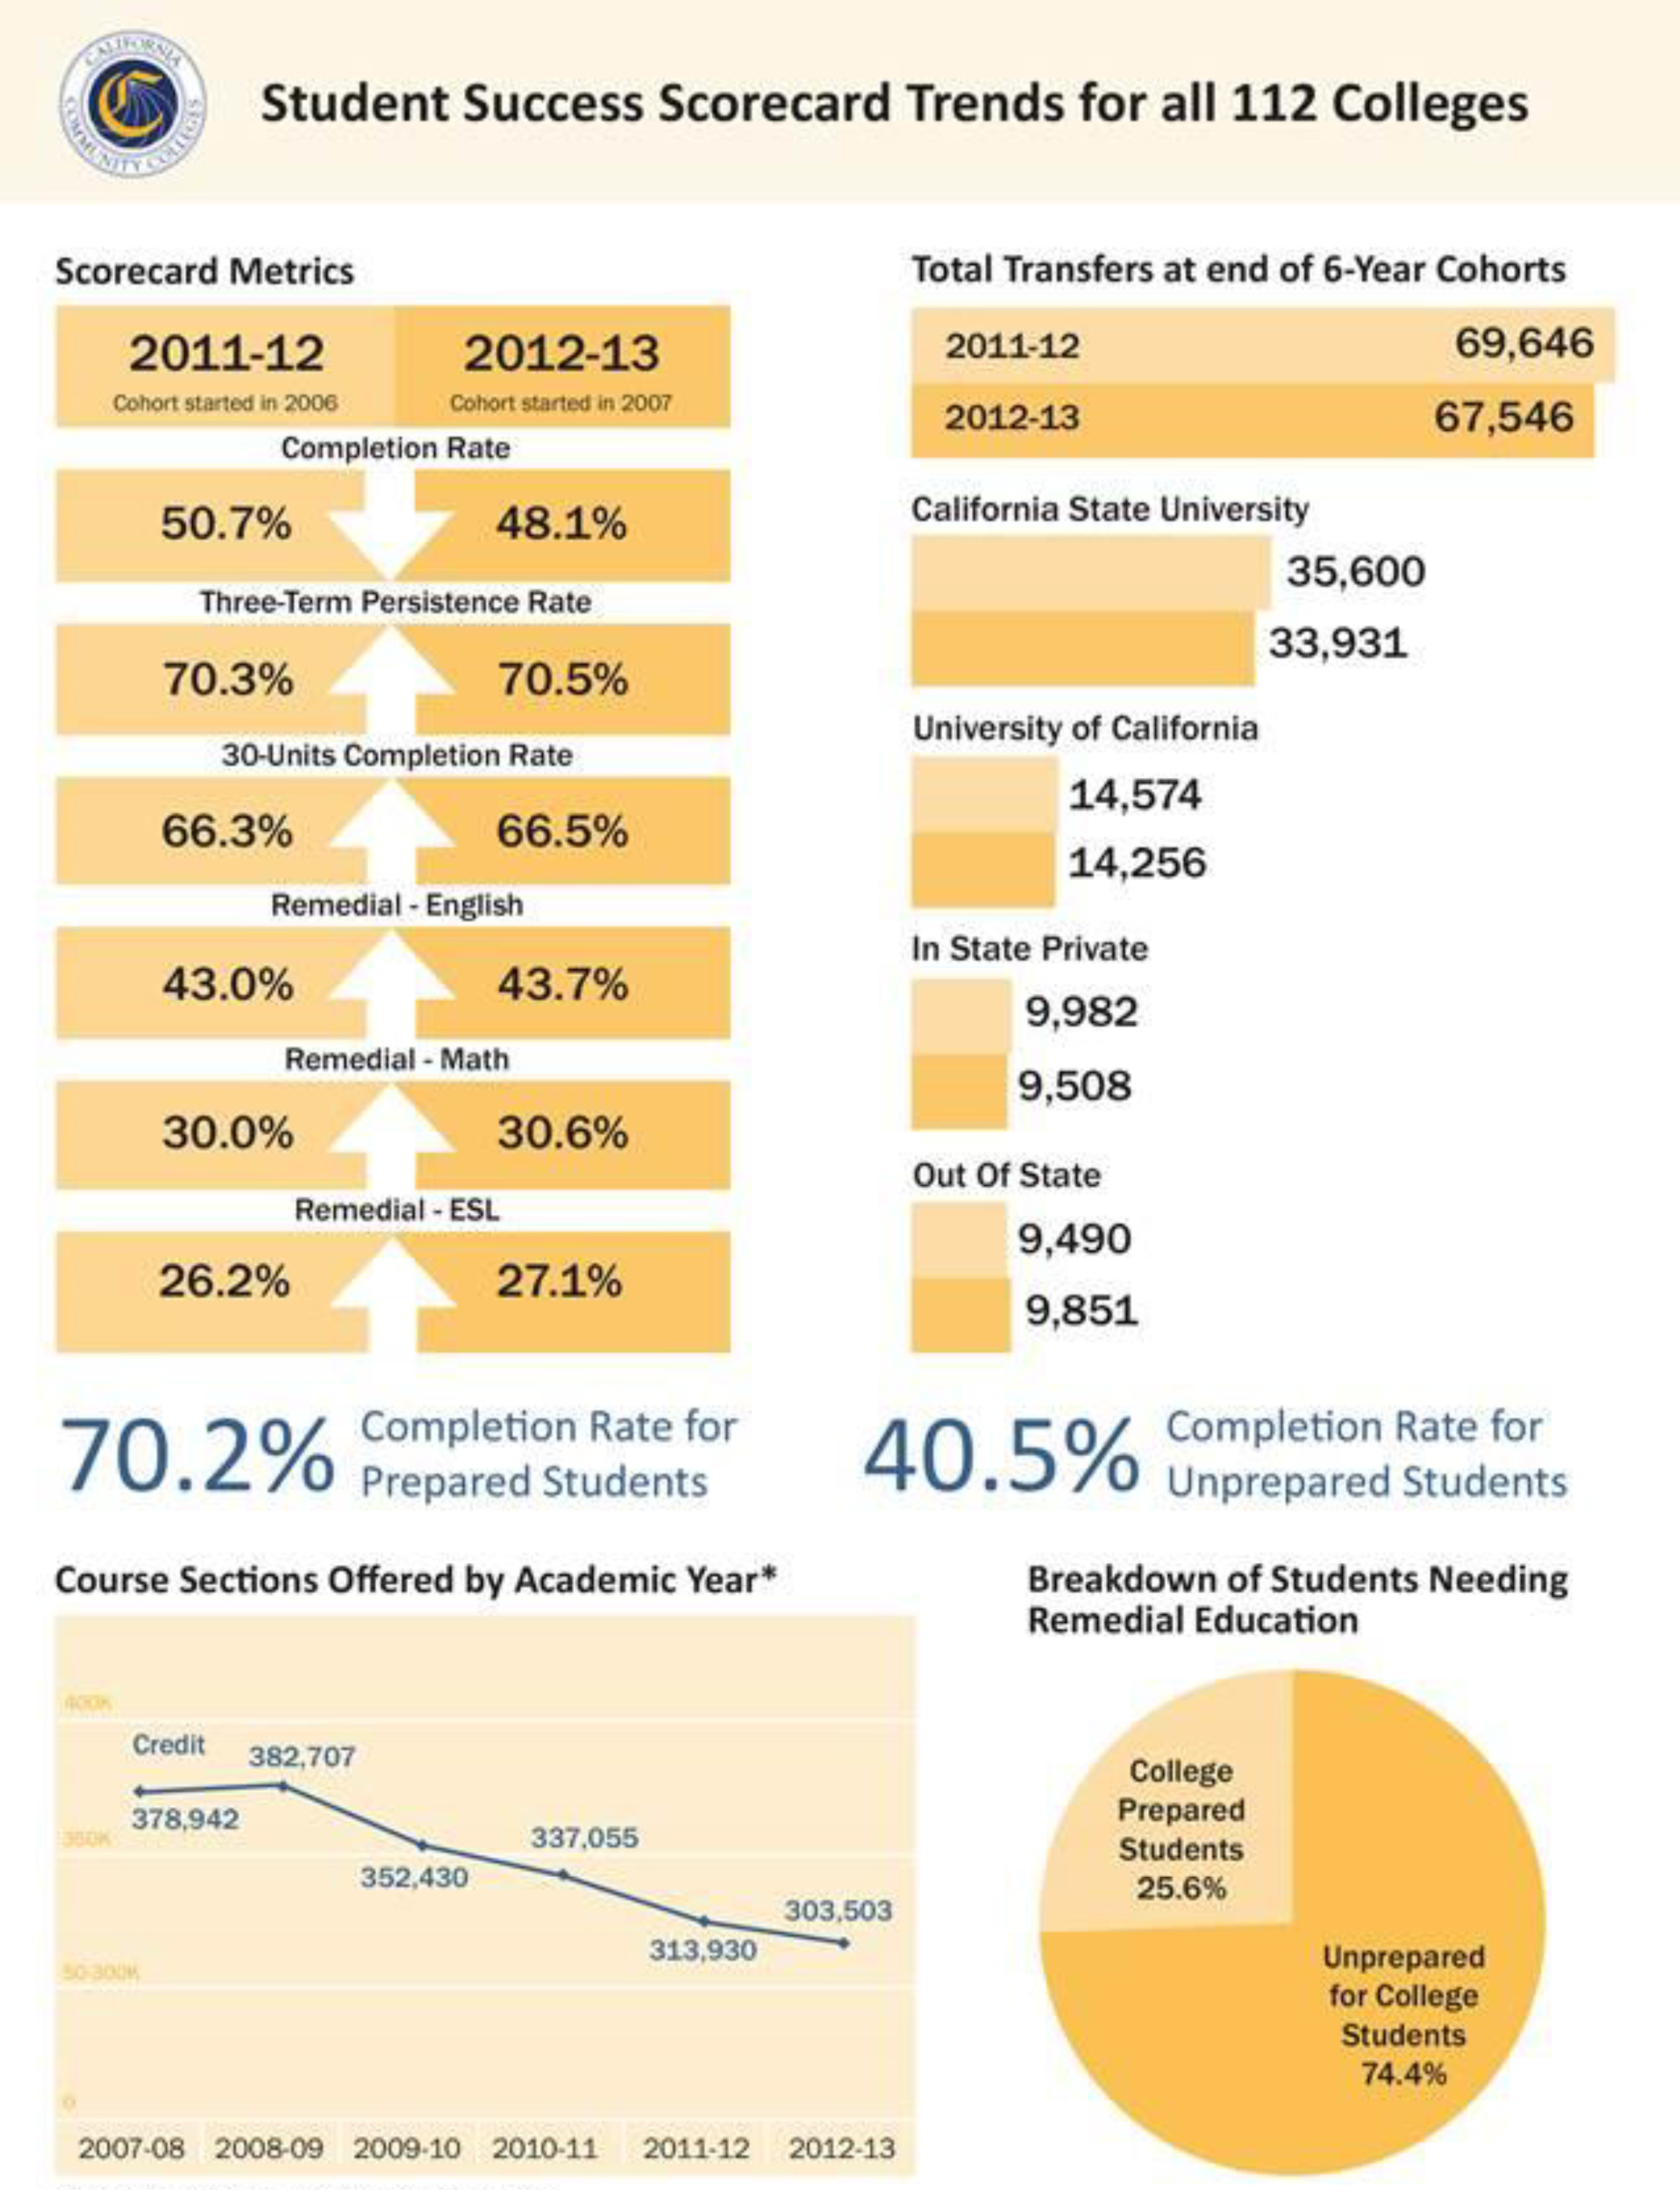 Source: California Community Colleges Chancellor's Office, 2014